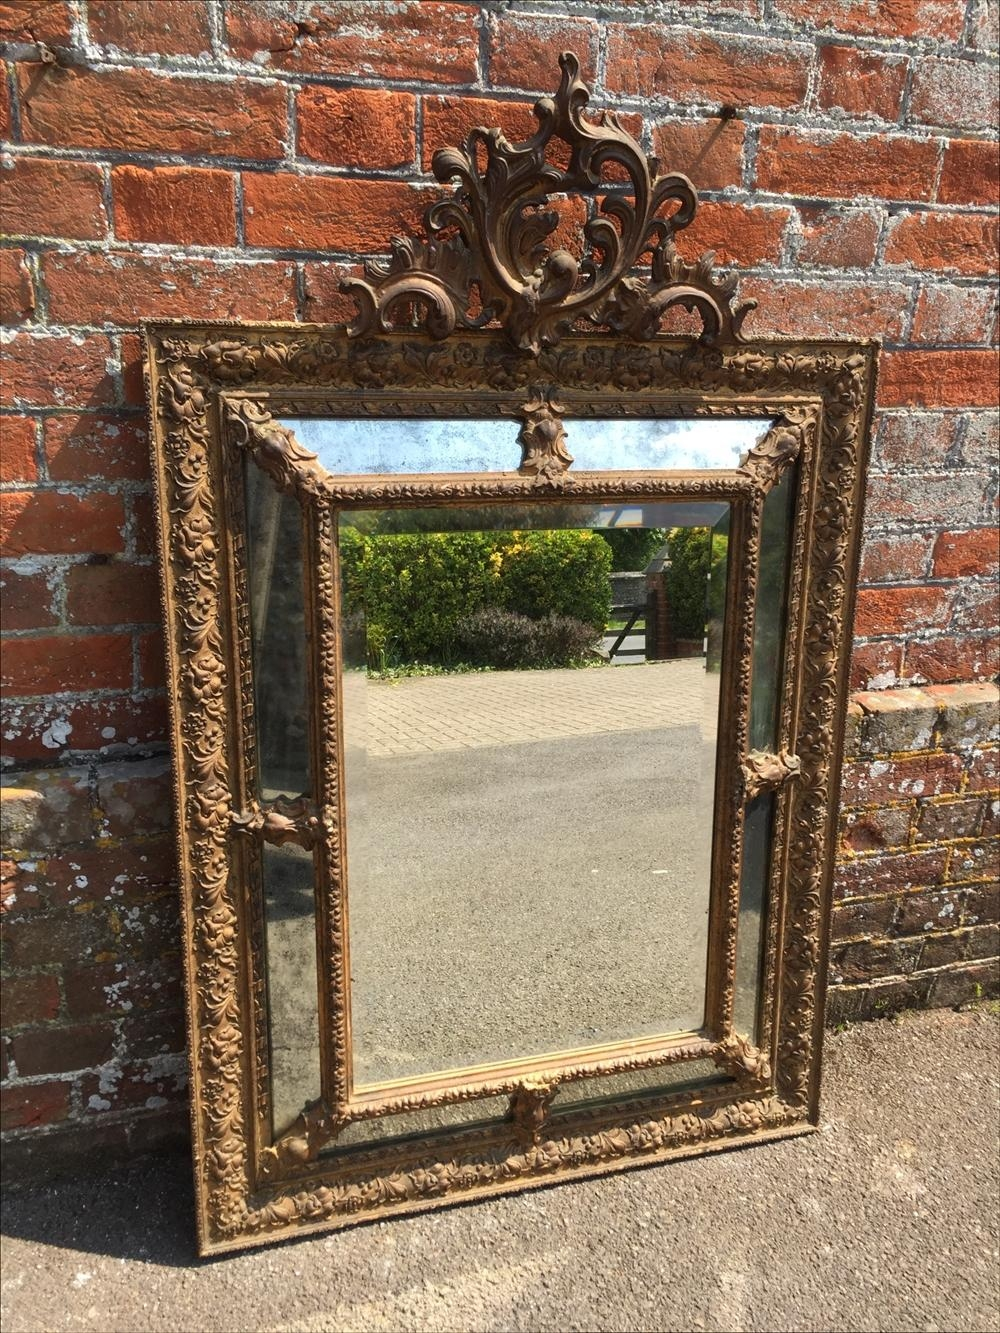 A Wonderful Antique 19Th Century French Carved Wood & Gesso Intended For French Mirrors Antique (Image 6 of 20)